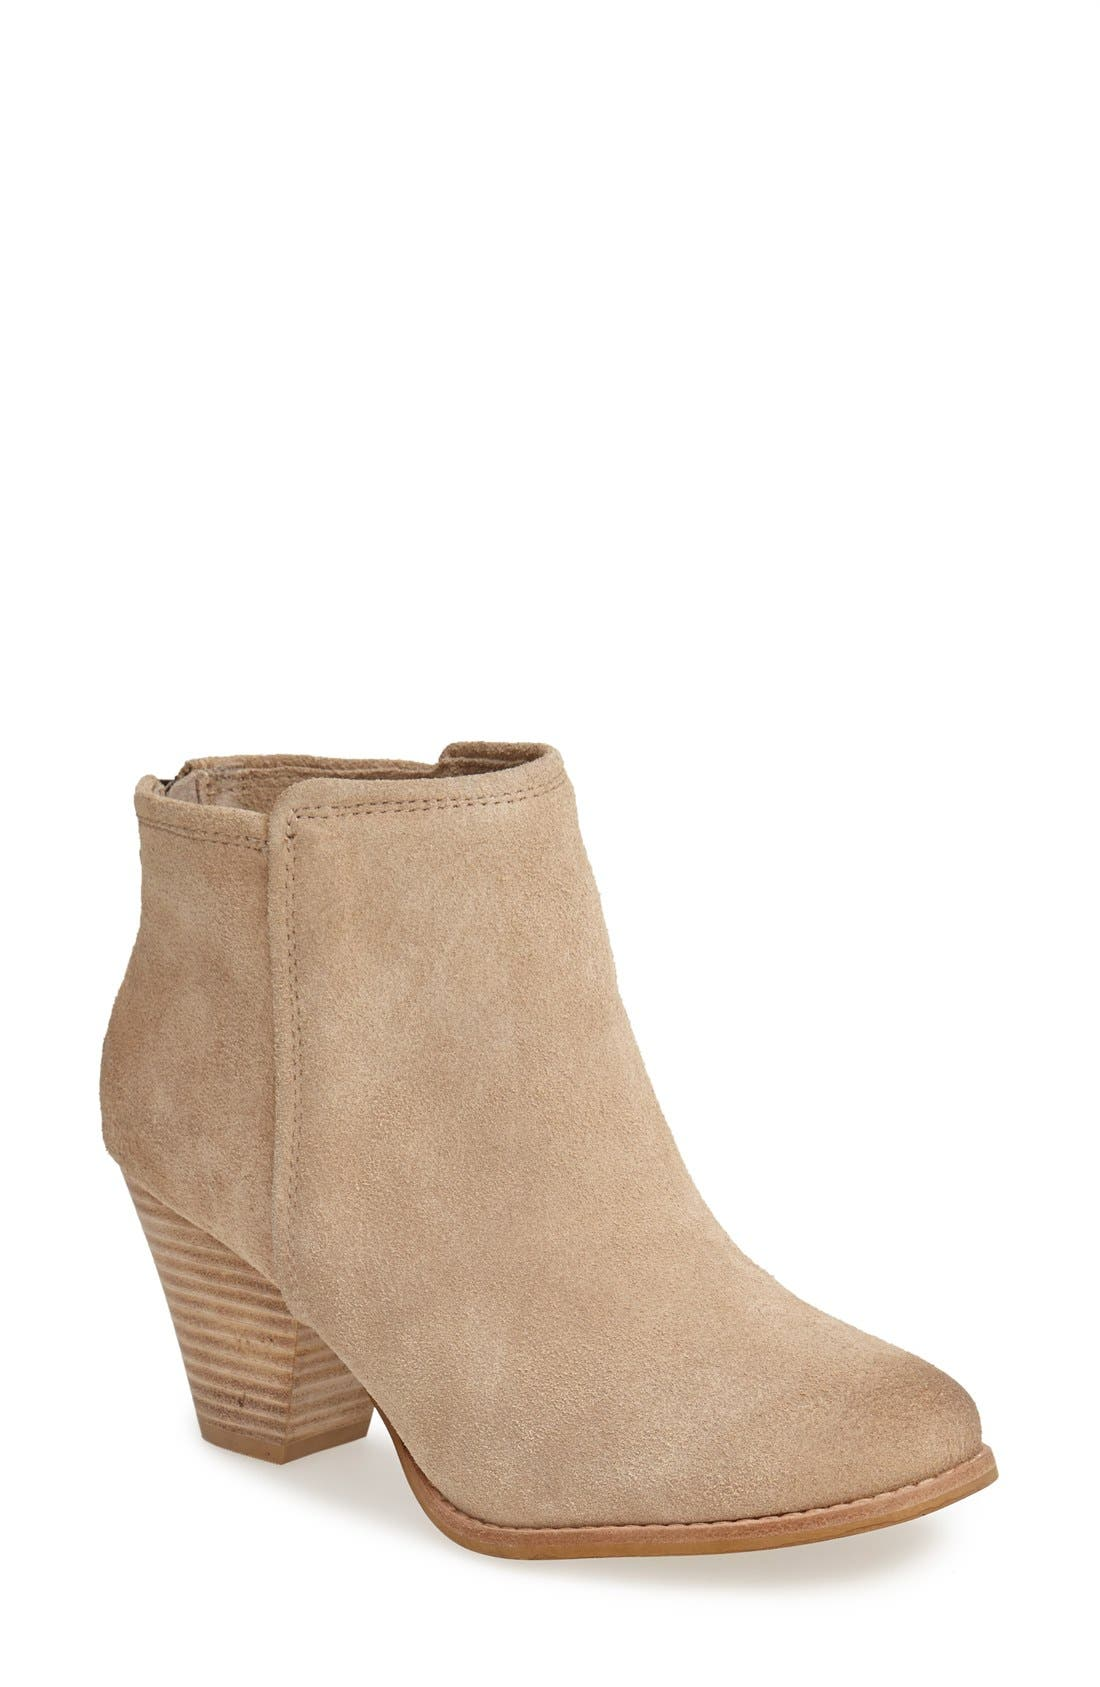 Main Image - Splendid 'Roland' Suede Ankle Bootie (Women)